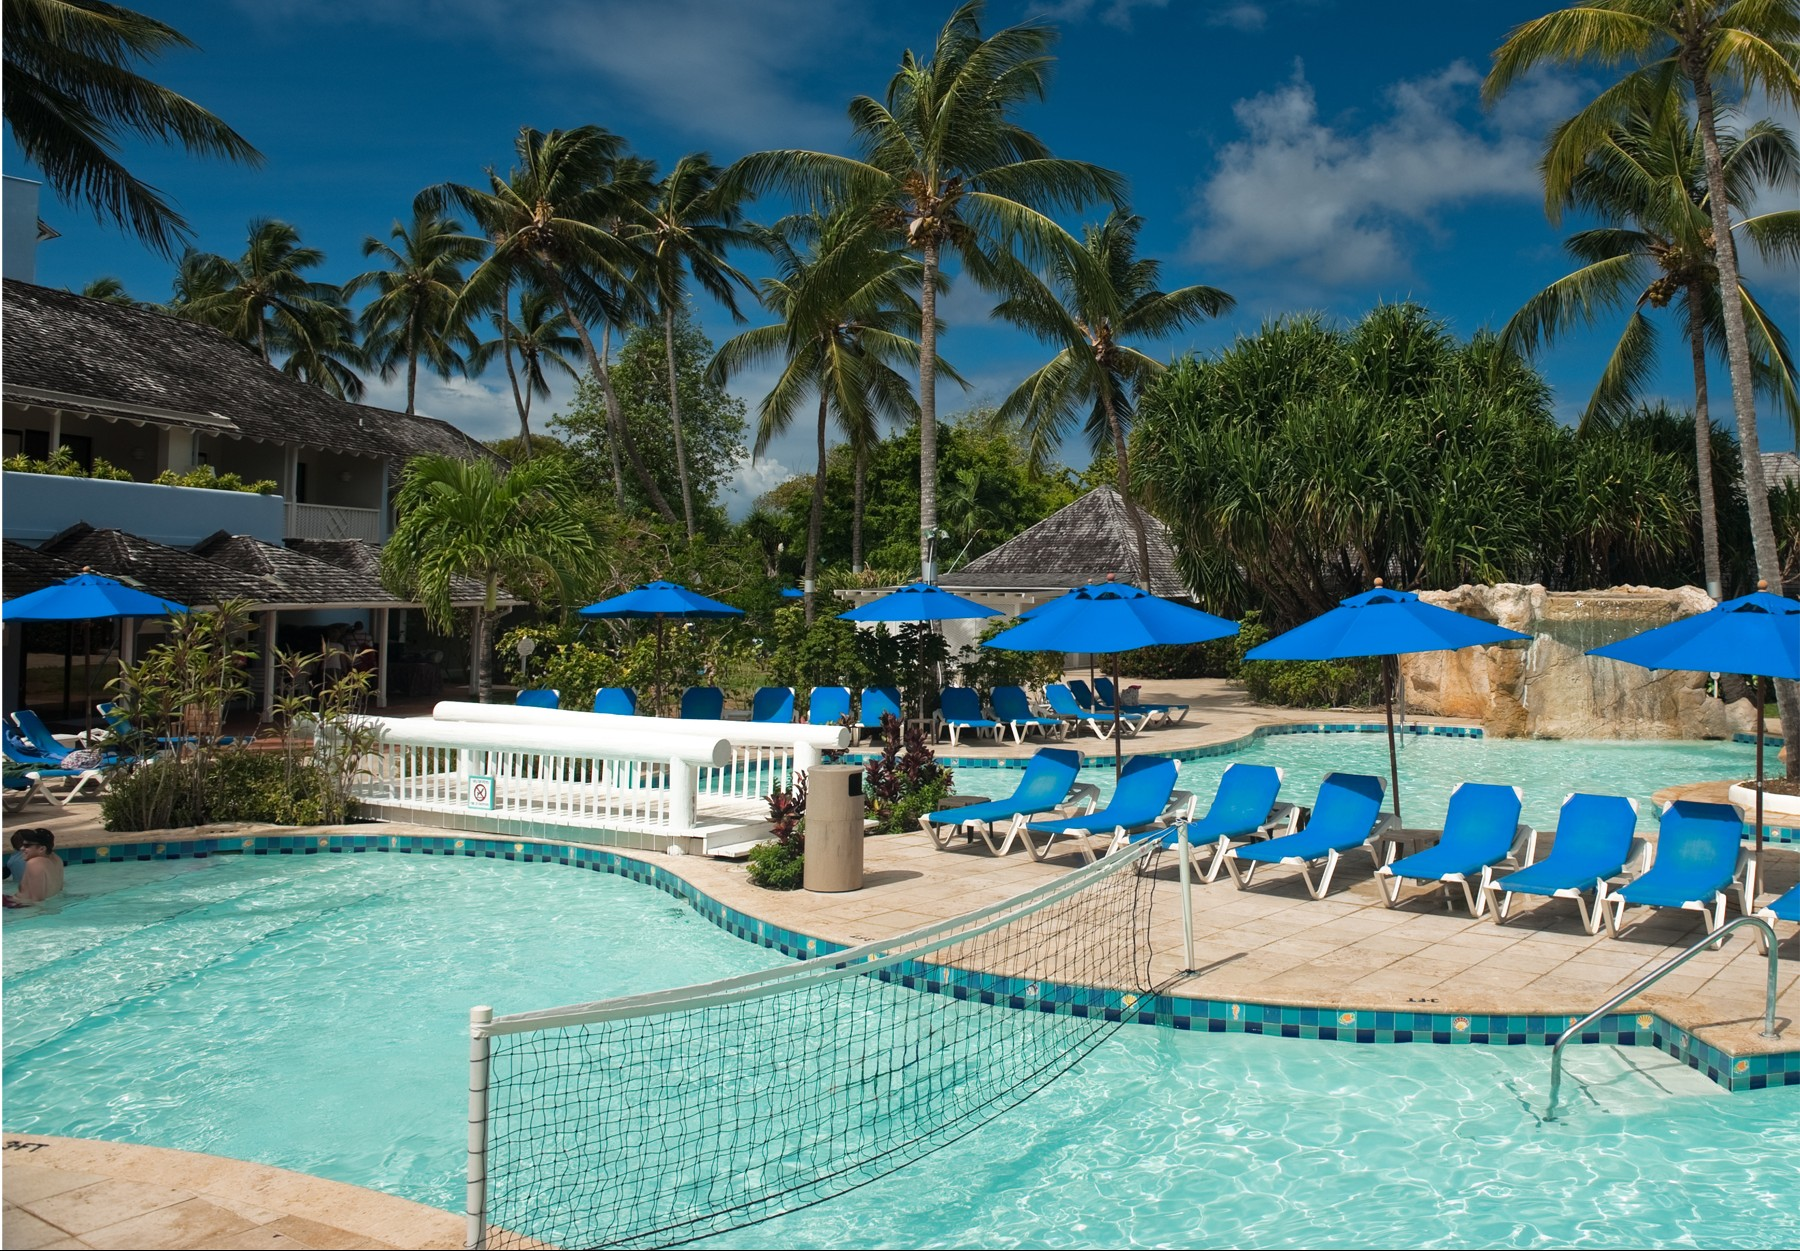 Almond Beach Resort Reviews – 3.5 Star All Inclusive